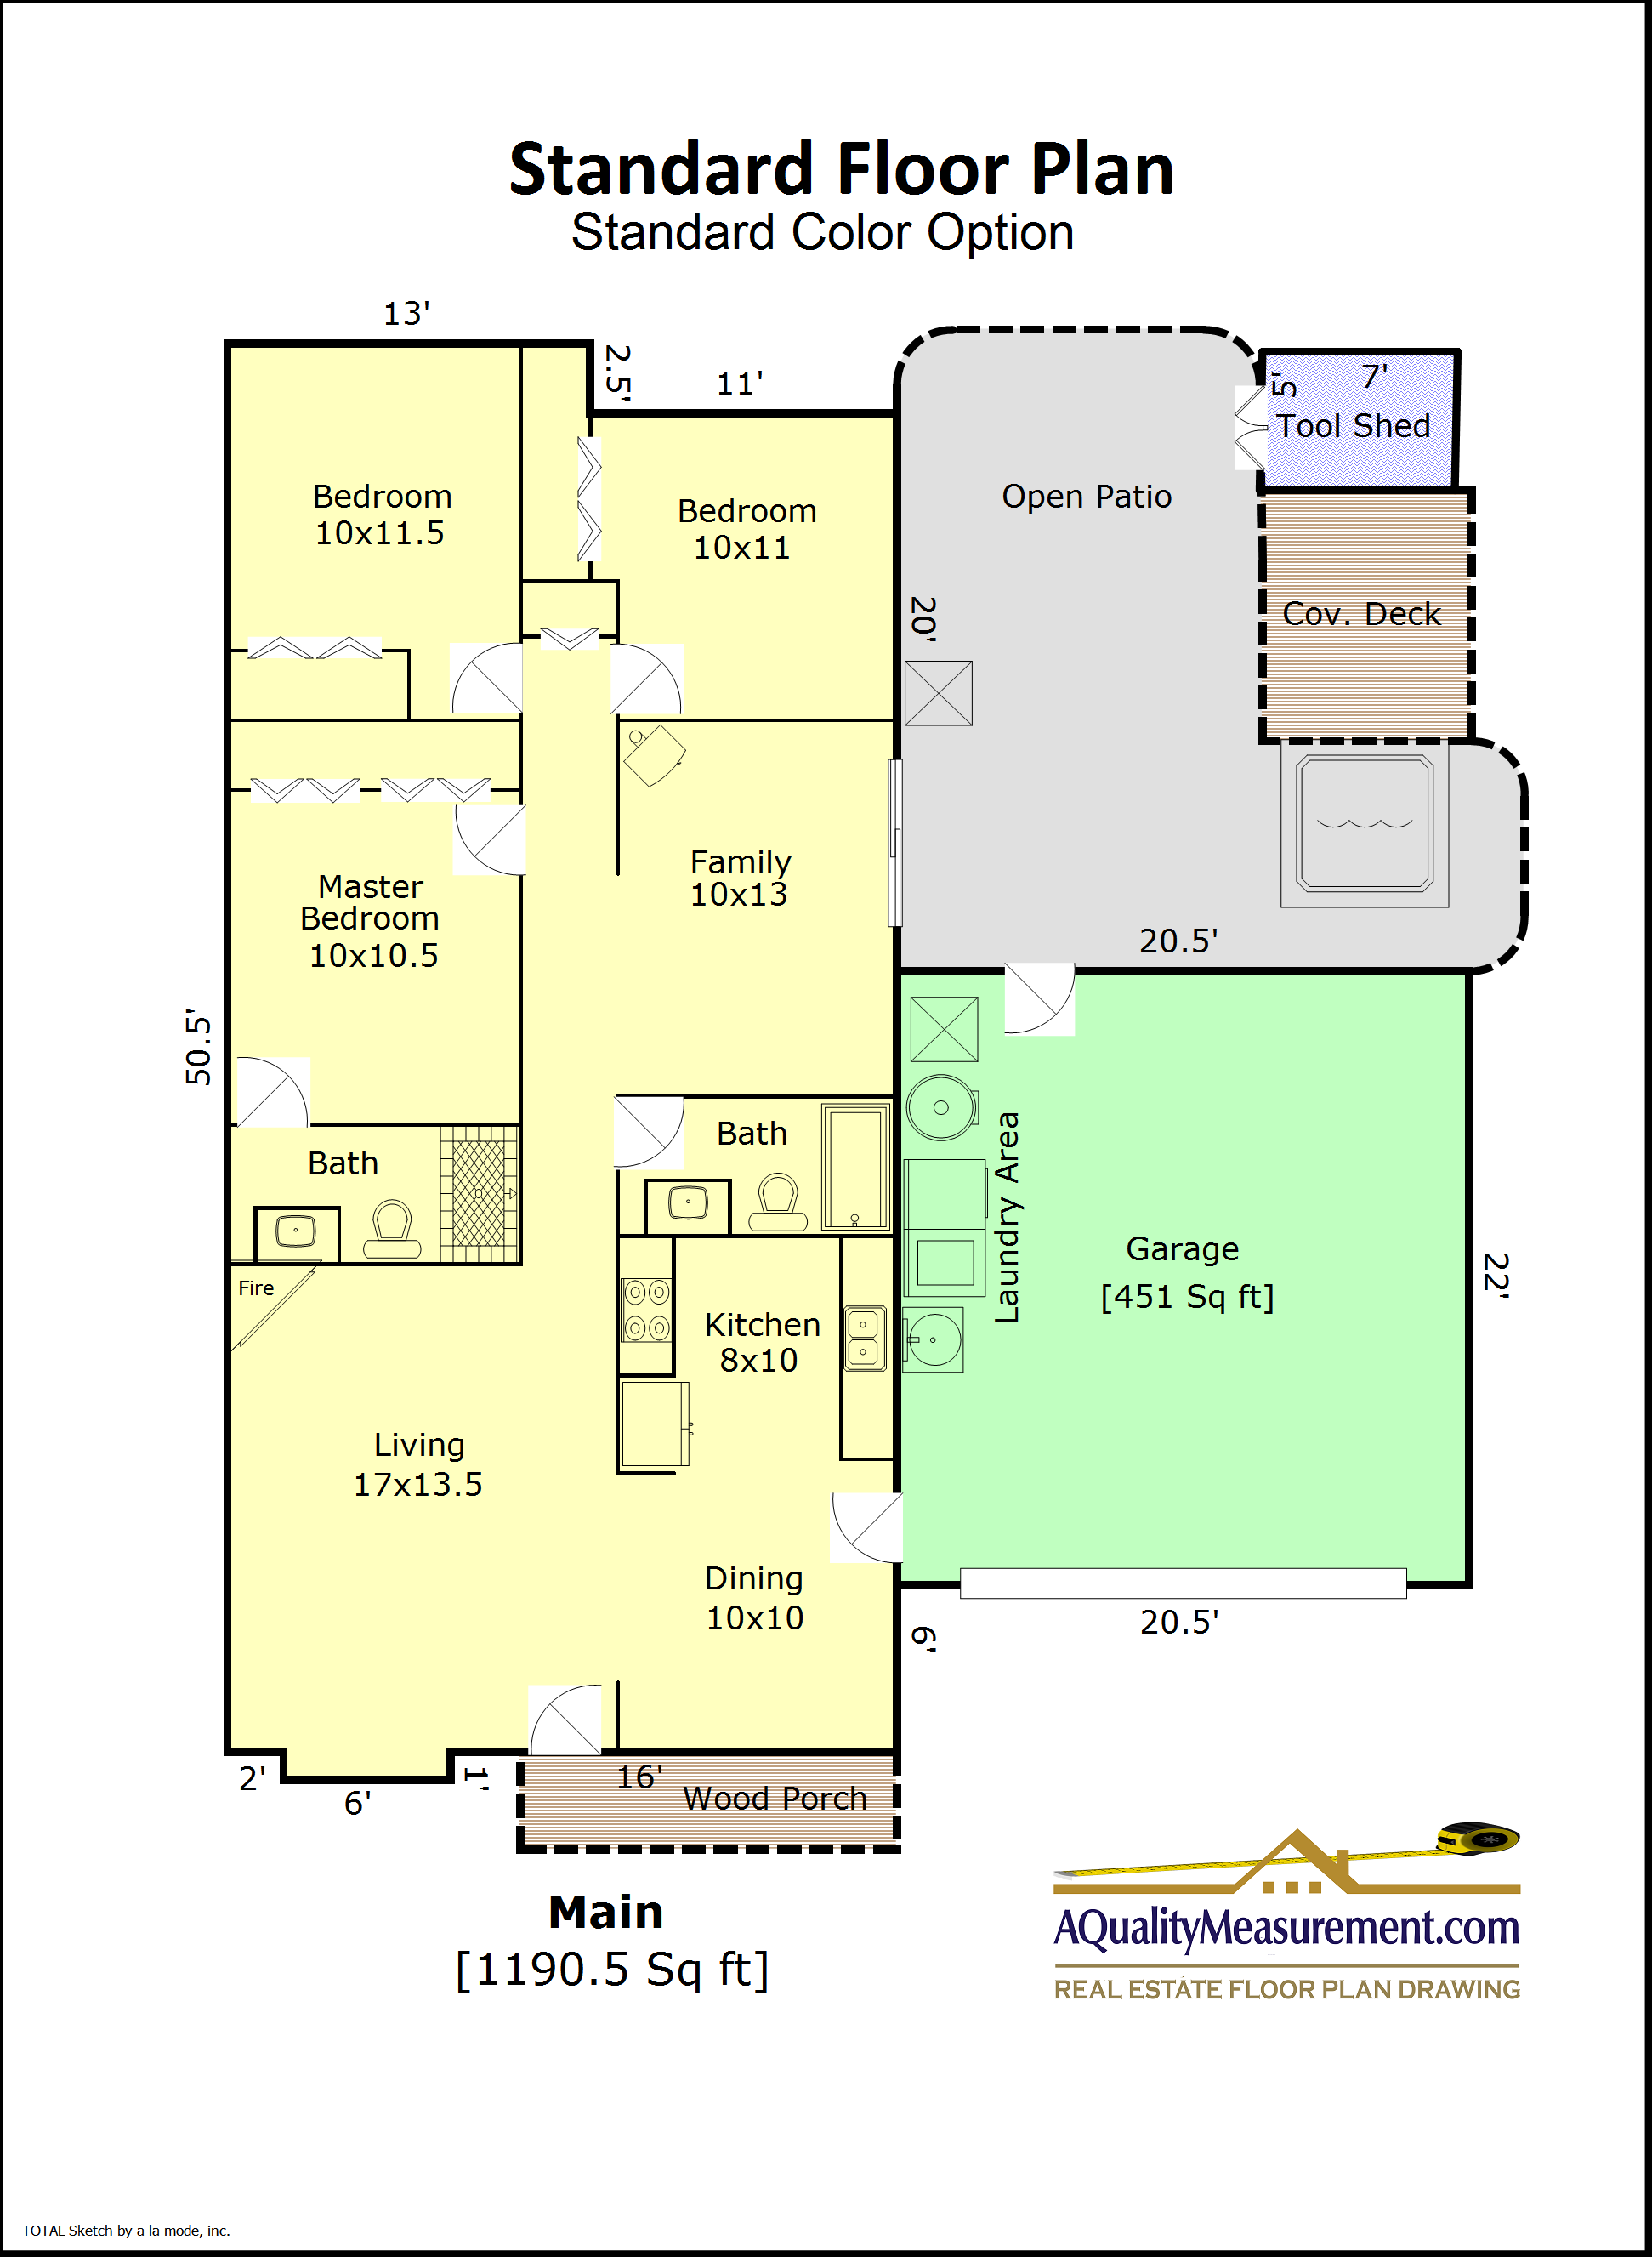 Standard Floor Plan in Standard Color available around Portland.